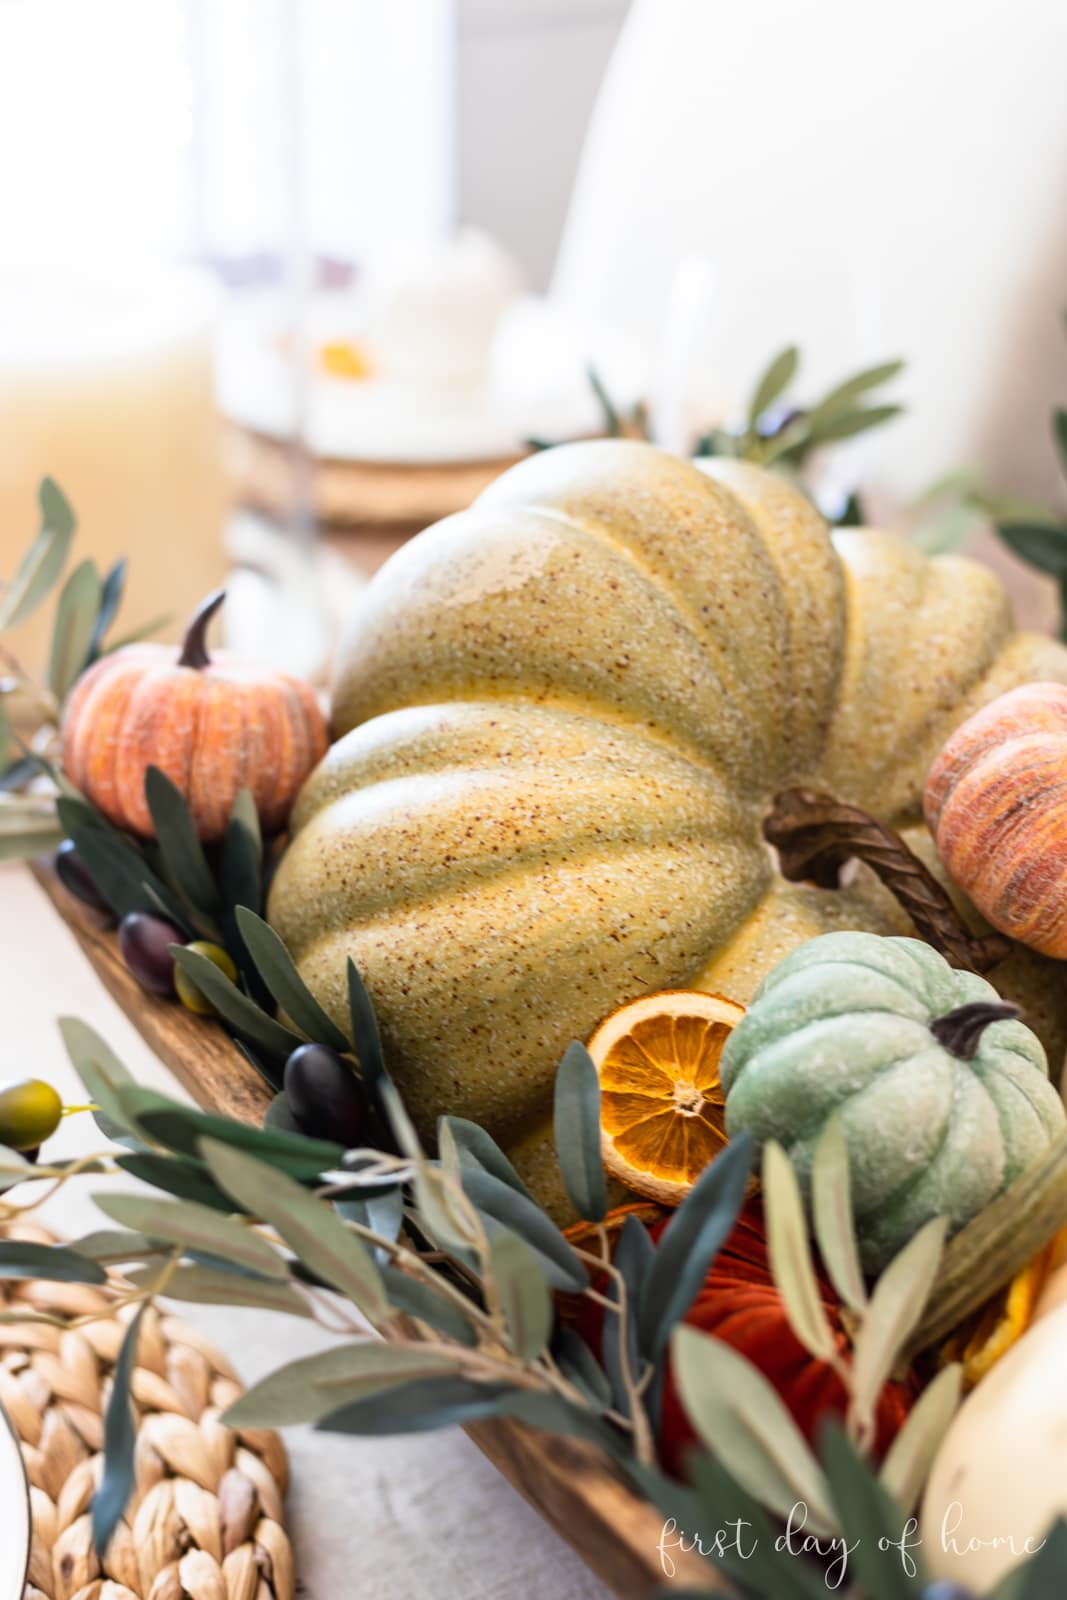 Fall centerpiece with faux pumpkins and orange slices in a dough bowl